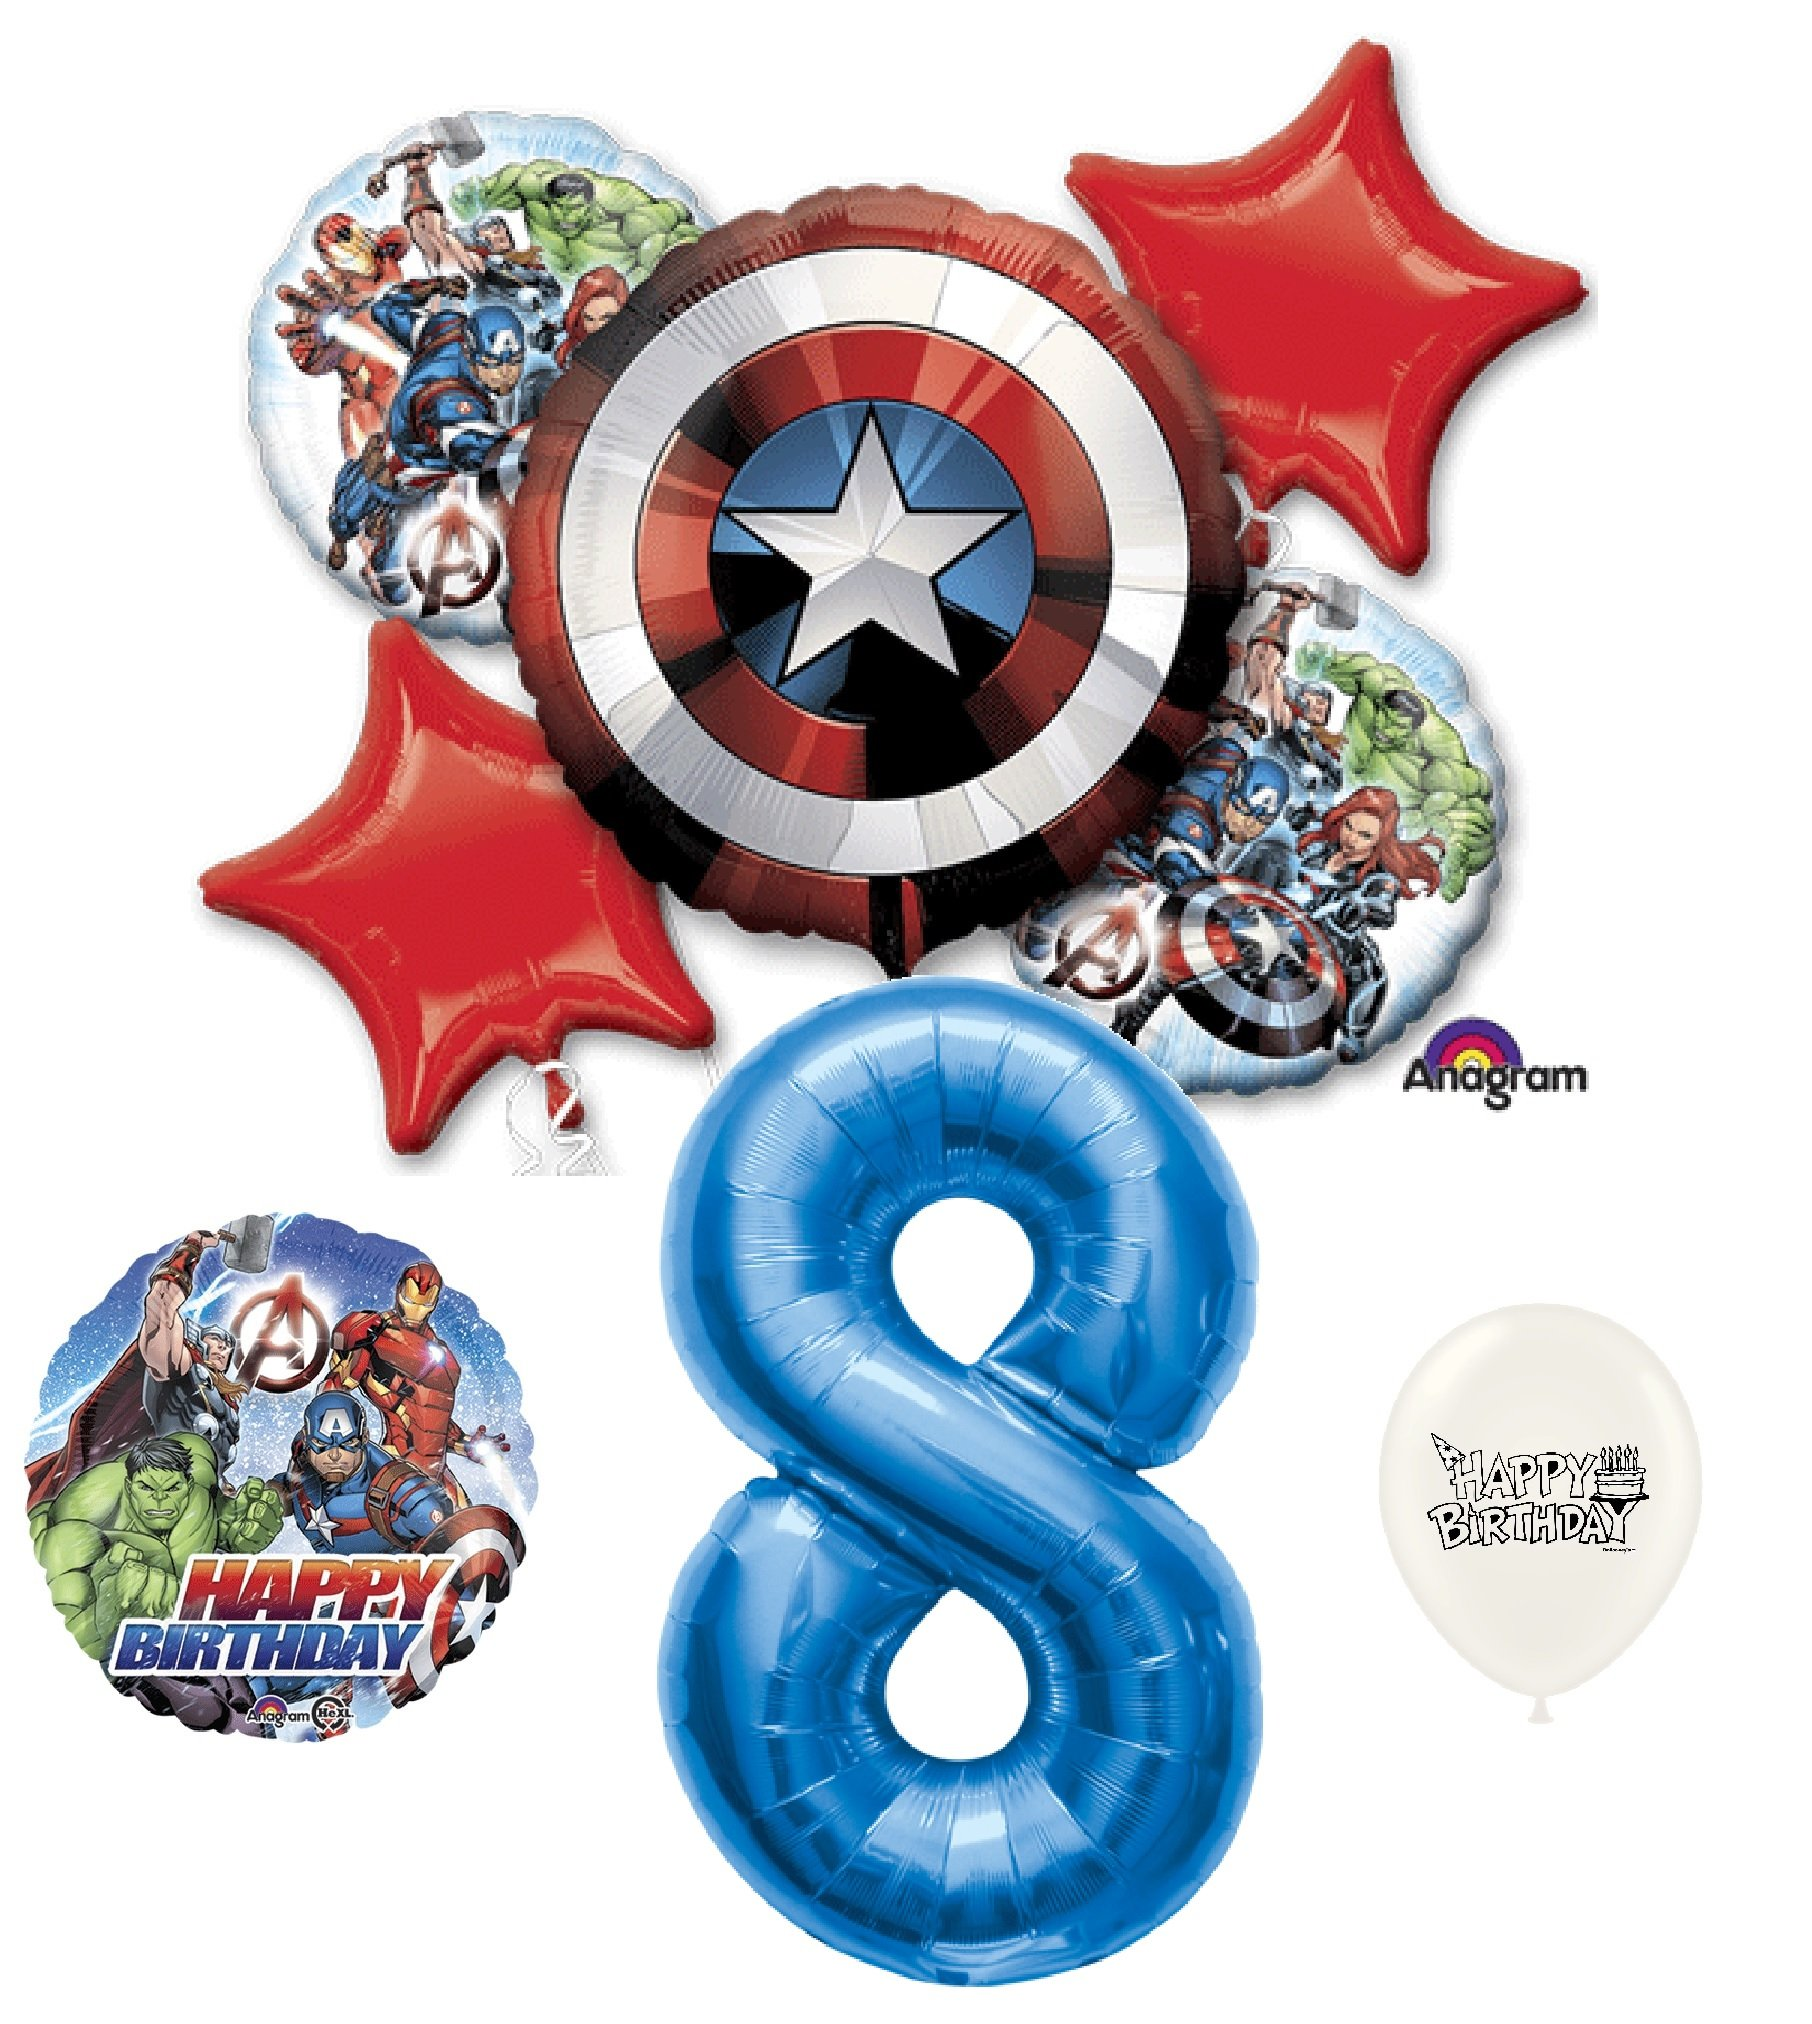 8th Birthday Blue Number Avengers Captain America Shield Balloons Bouquet Bundle